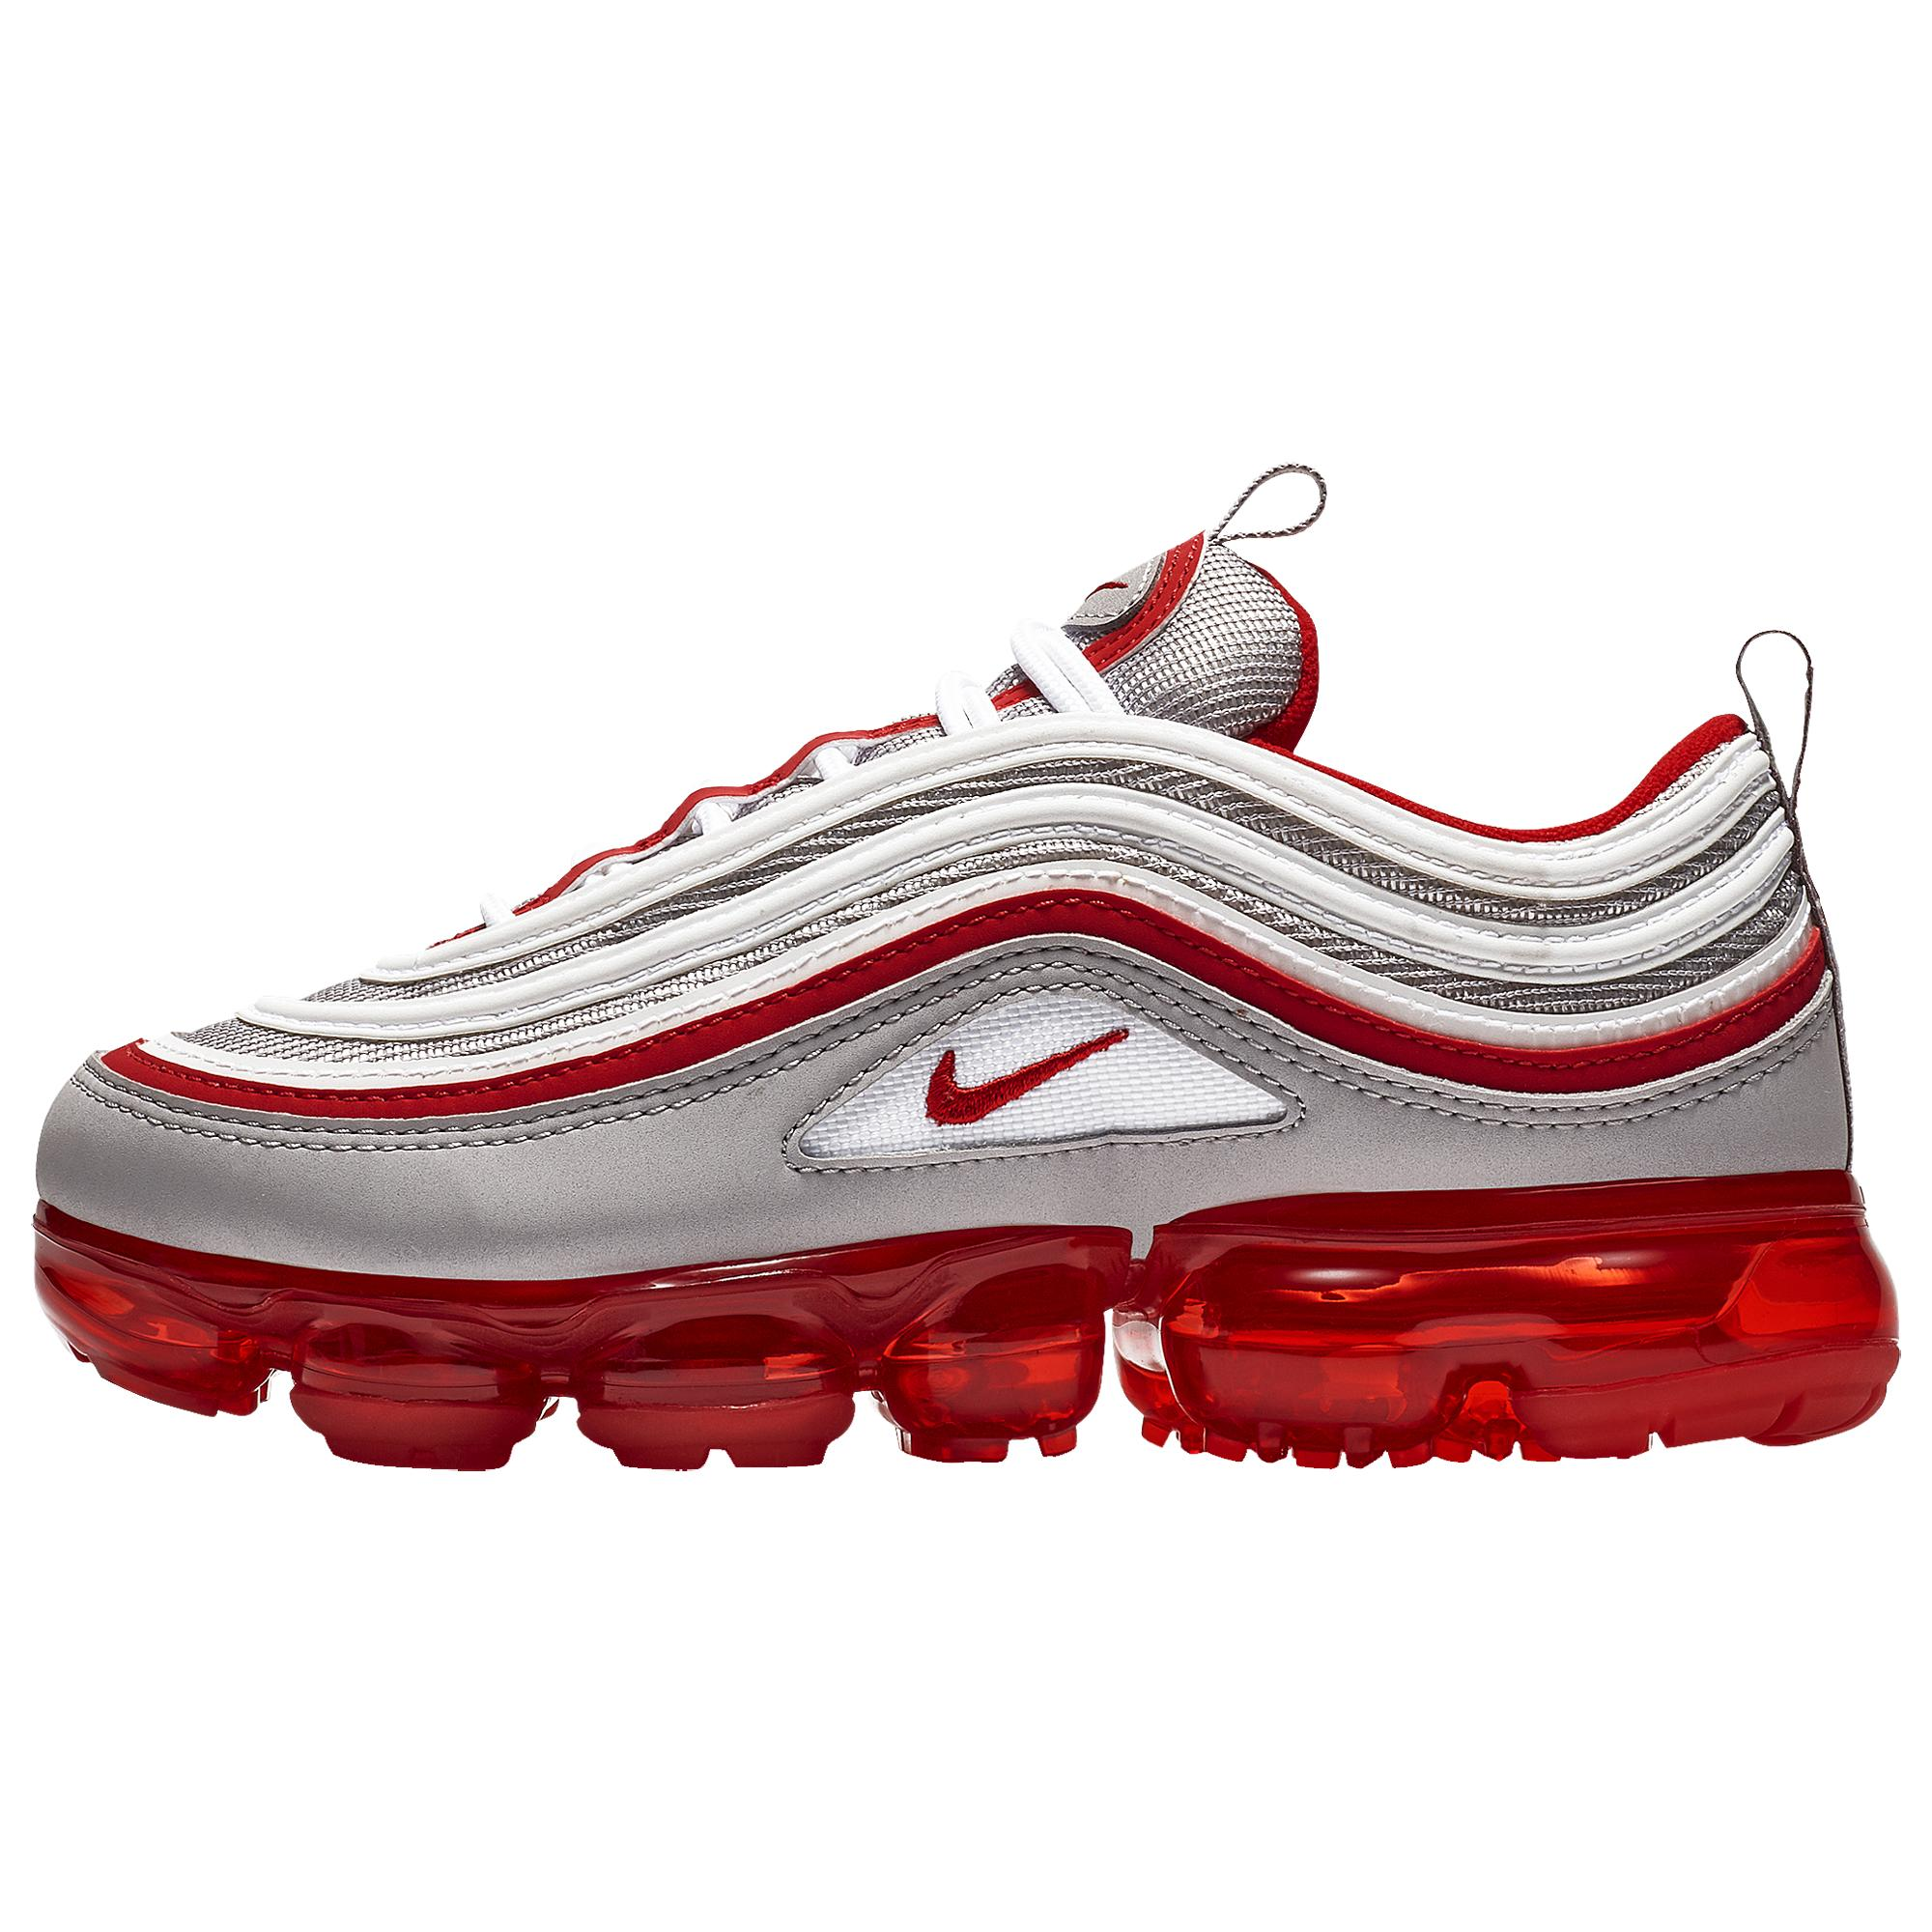 finest selection 71131 75c90 Men's Red Vapormax 97 Running Shoes